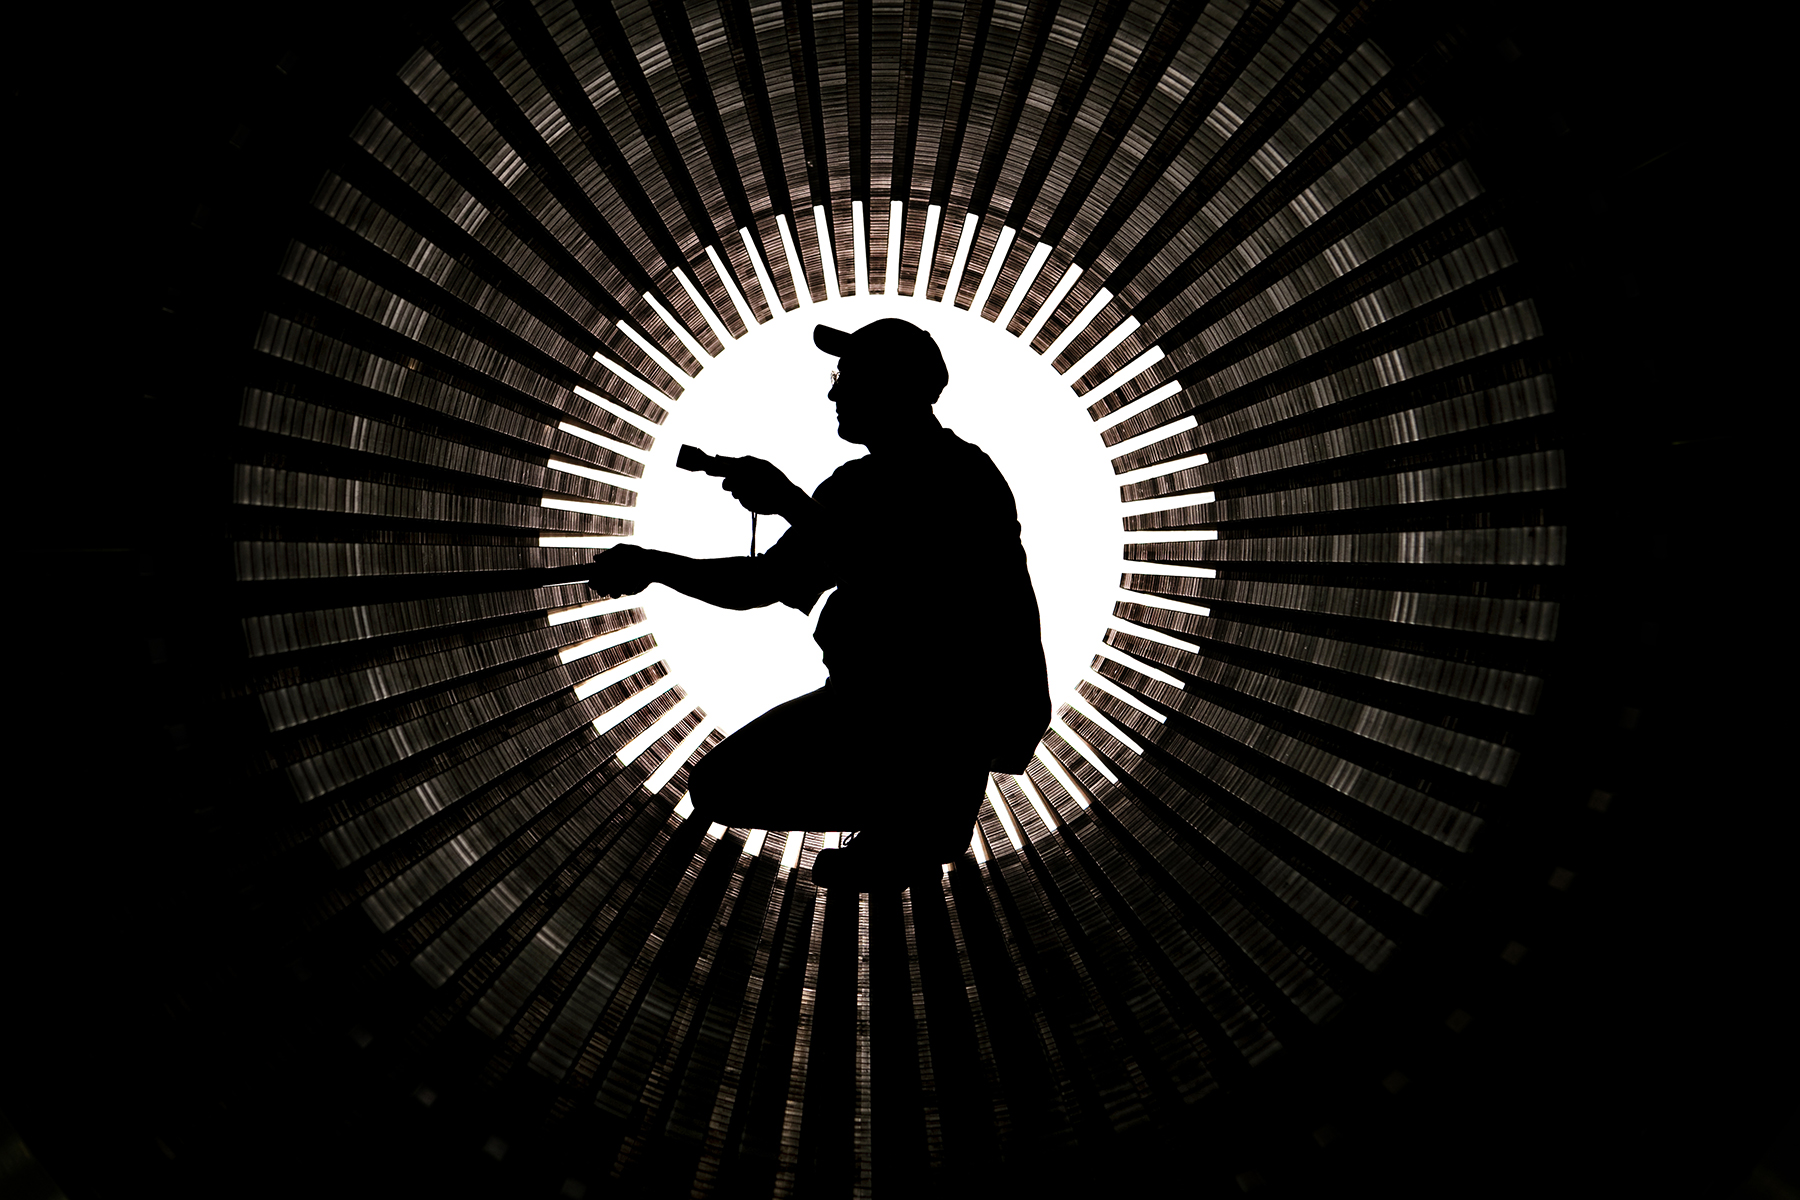 A black and white photo of a silhouetted man inside of the mouth of a giant turbine. The man is using a flashlight to inspect the blades of the turbine. As companies spend increasingly more money on continuous improvement processes that add efficiency to the manufacturing processes and ensure product quality and integrity, they're also finding it useful to photograph these corporate brand attributes for marketing and corporate communications purposes. In this photo of an employee of Siemens Energy's Charlotte Turbine-Generator Center inspecting the inside of a stator core, it's easy for prospective turbine customers to visualize the best practices that set Siemens above competitors.